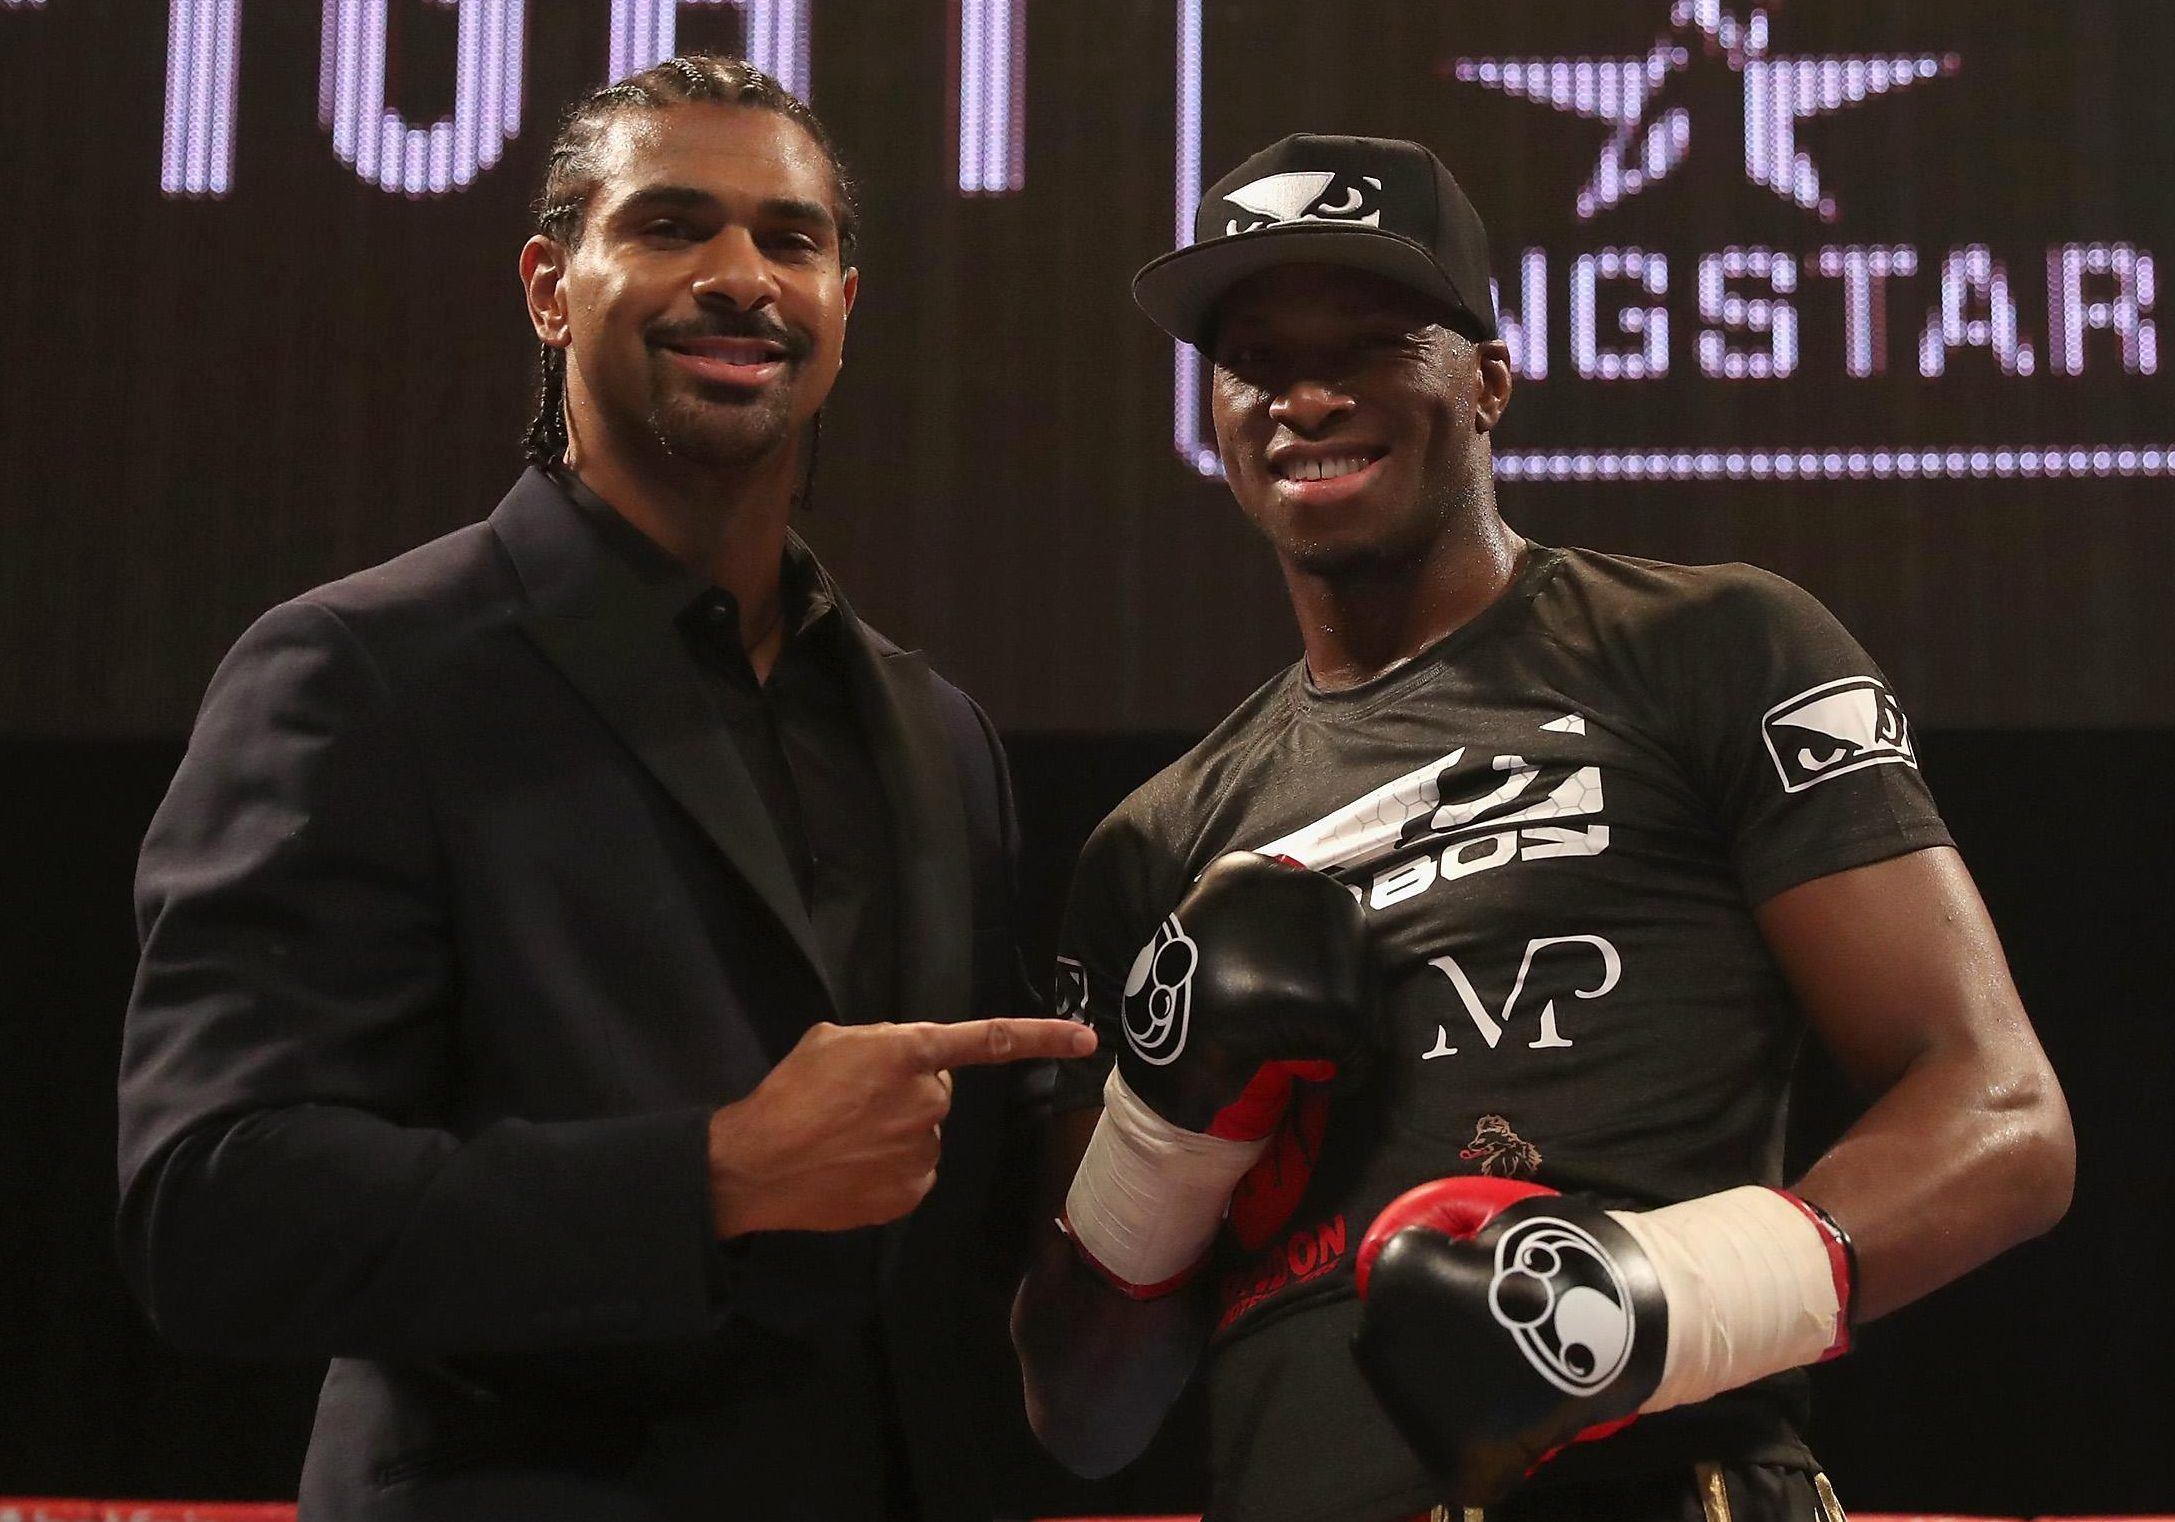 David Haye snapped up the unorthodox striker for his Hayemaker promotional stable